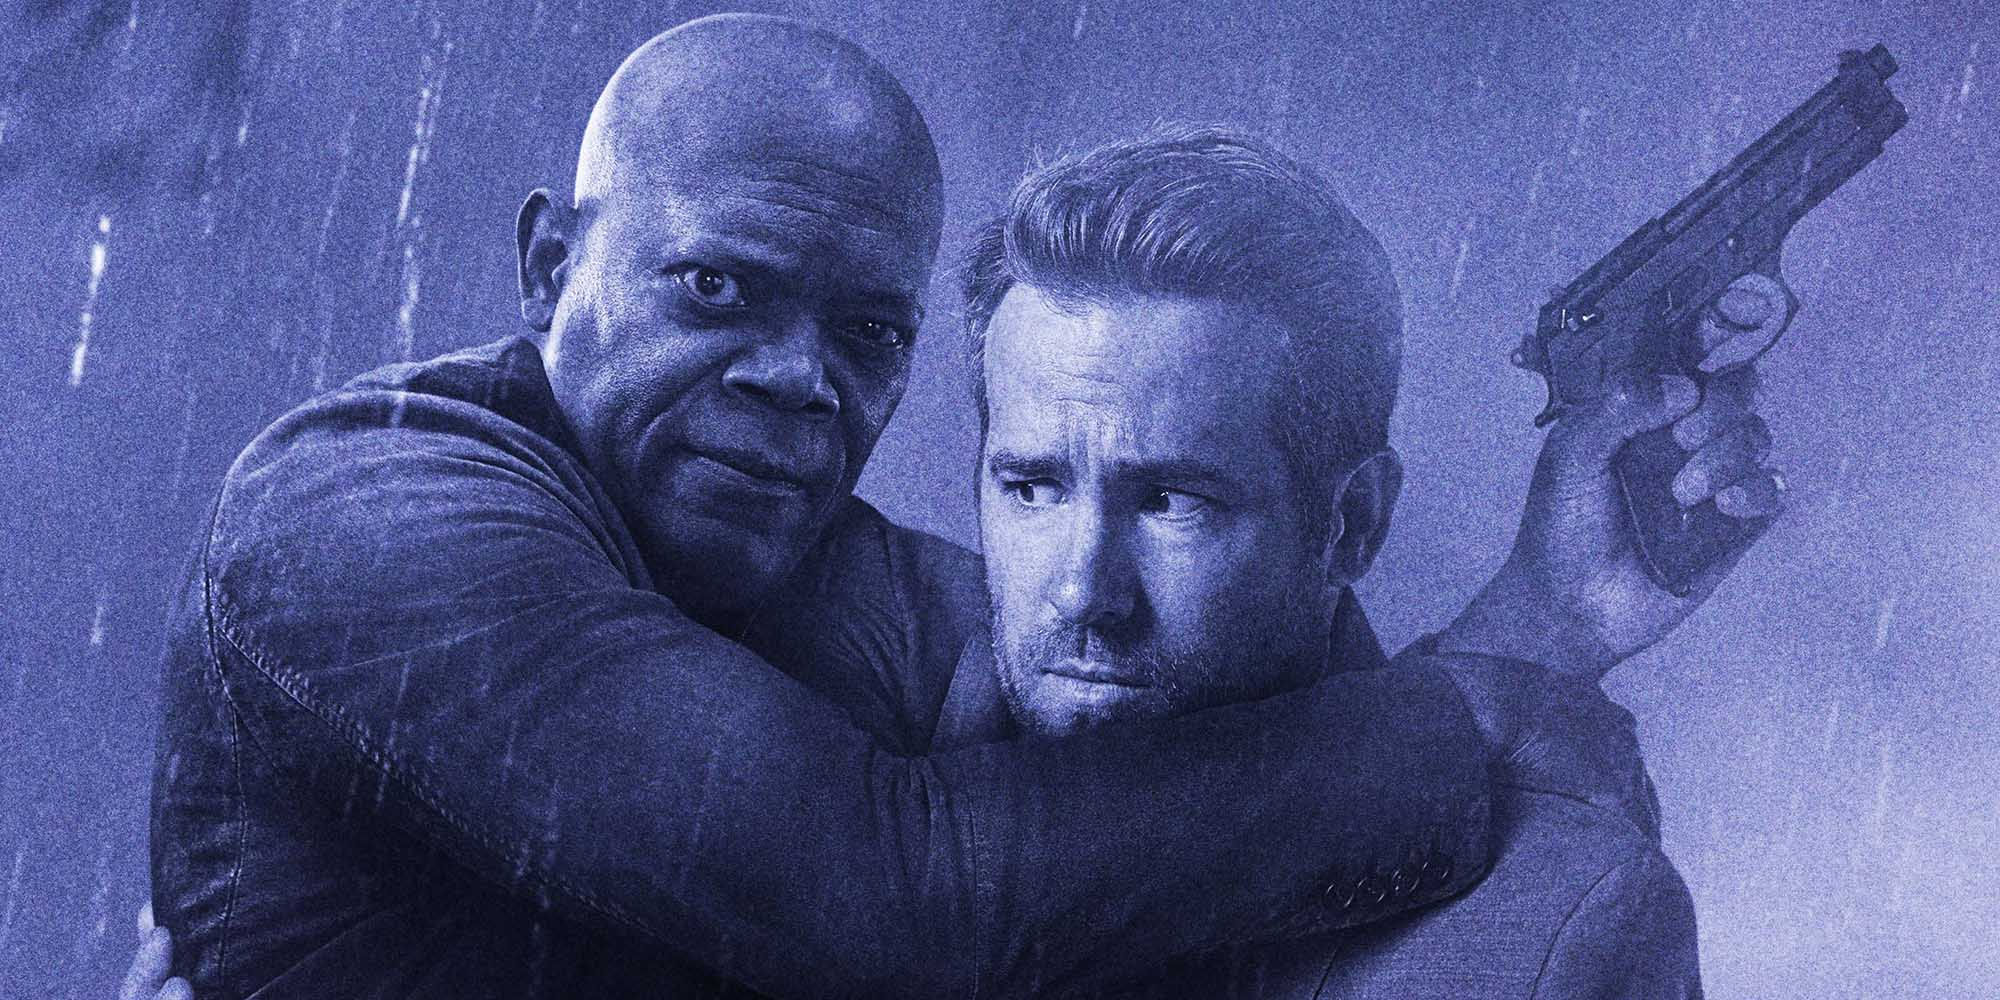 Action packed new trailer for The Hitman's Bodyguard